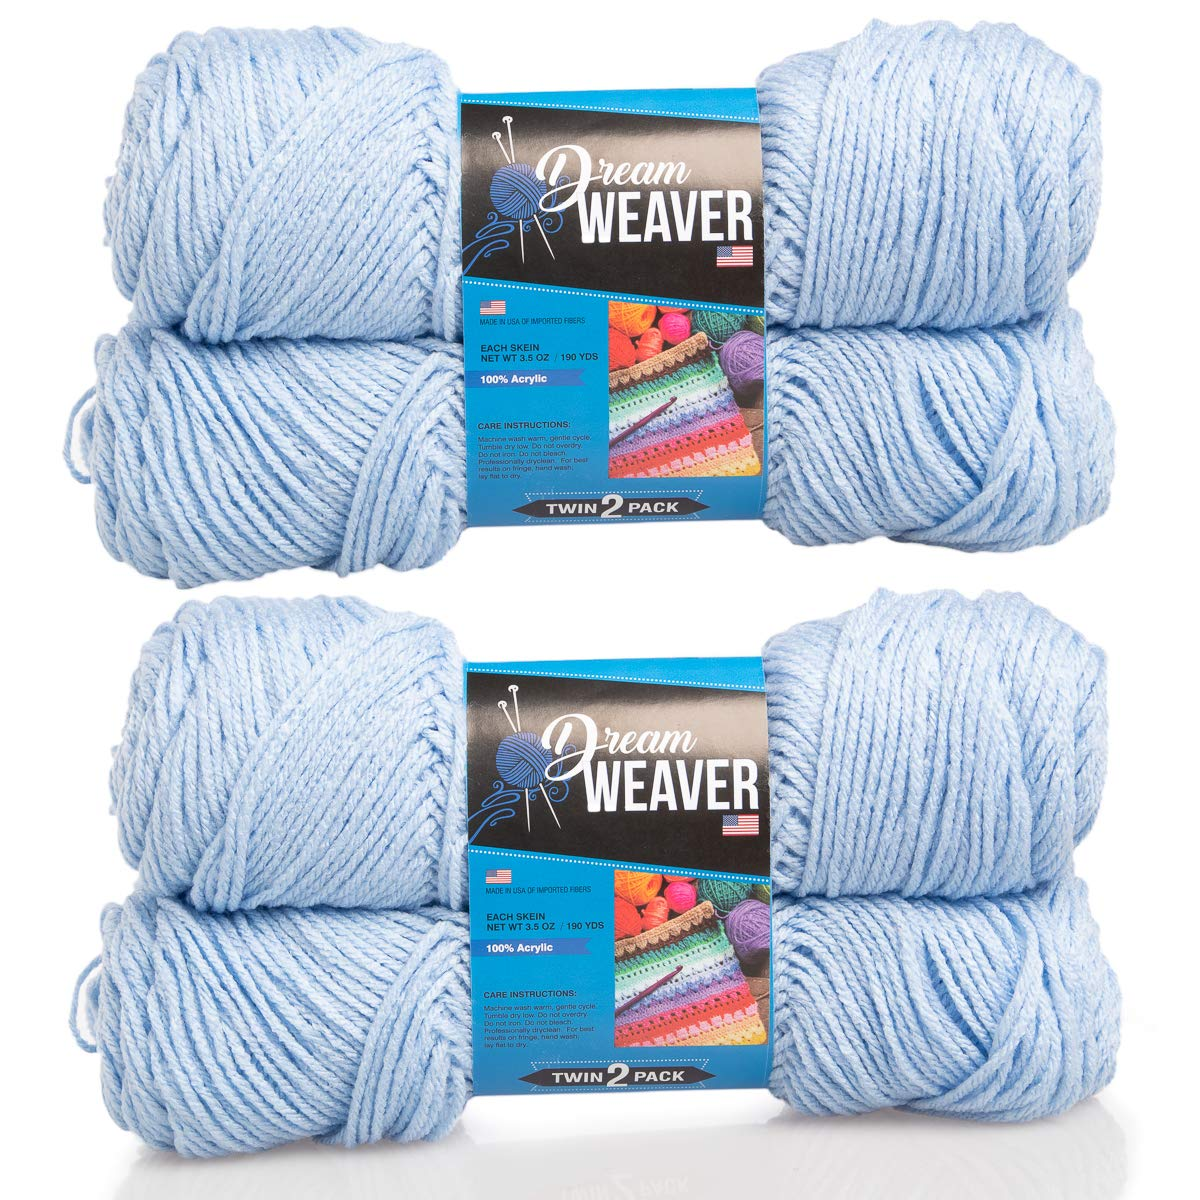 Dream Weaver 4 Pack Solid Color 100% Acrylic Soft Powder Blue Yarn for Knitting Crocheting Medium Worsted #4